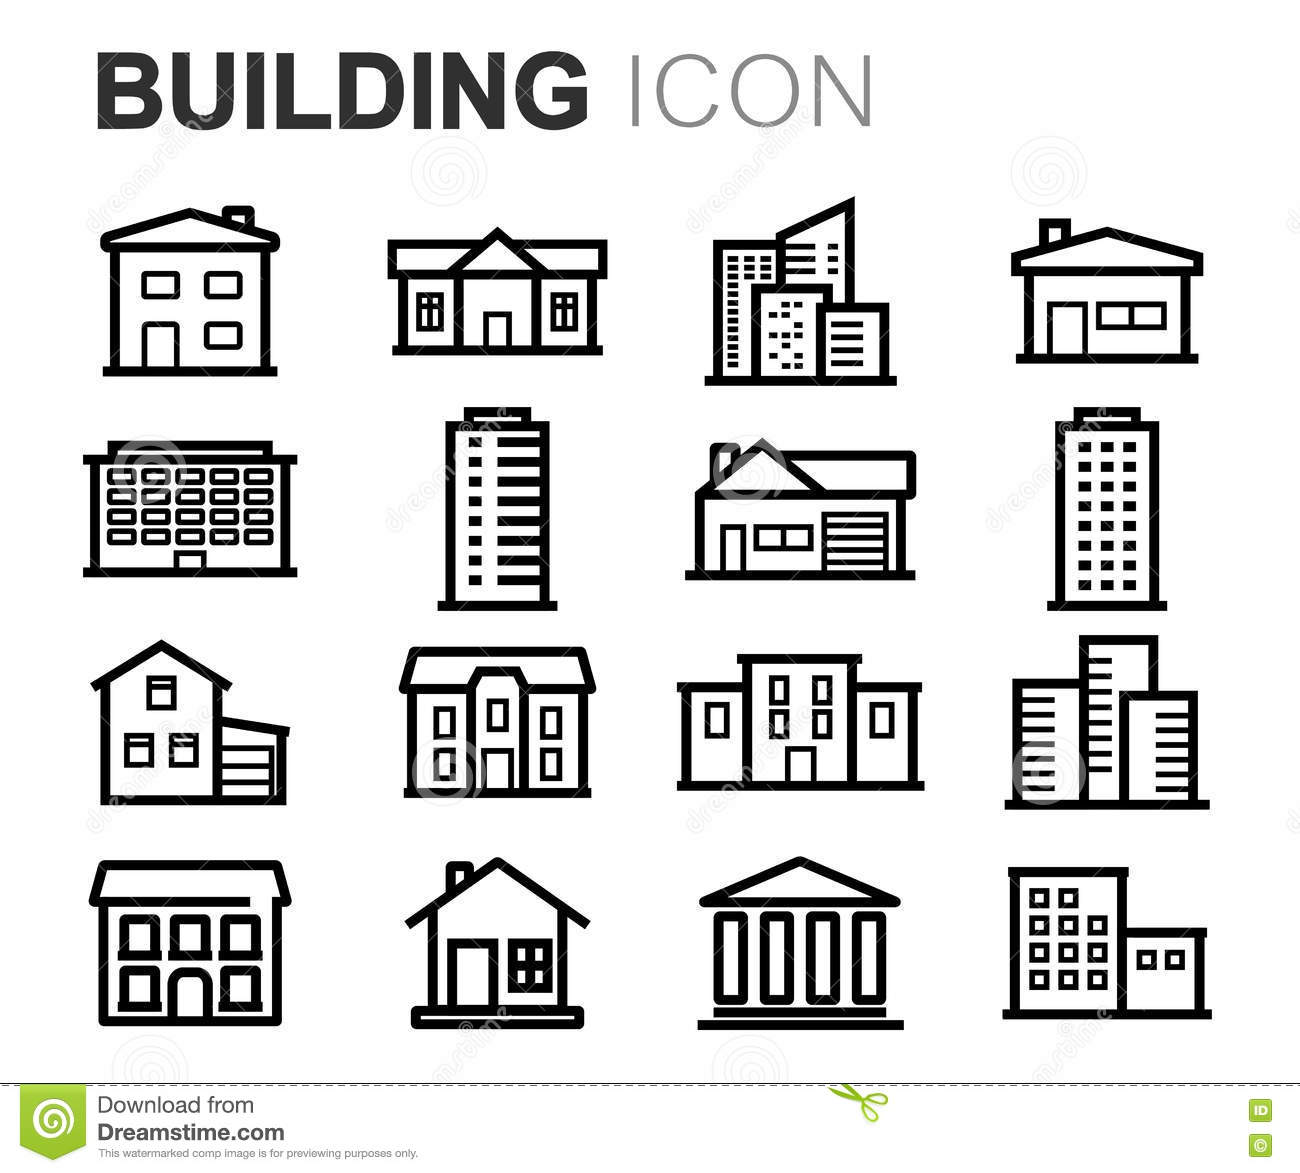 Swell Government Buildings Black And White Icons Stock Vector Auto Wiring Cloud Inamadienstapotheekhoekschewaardnl